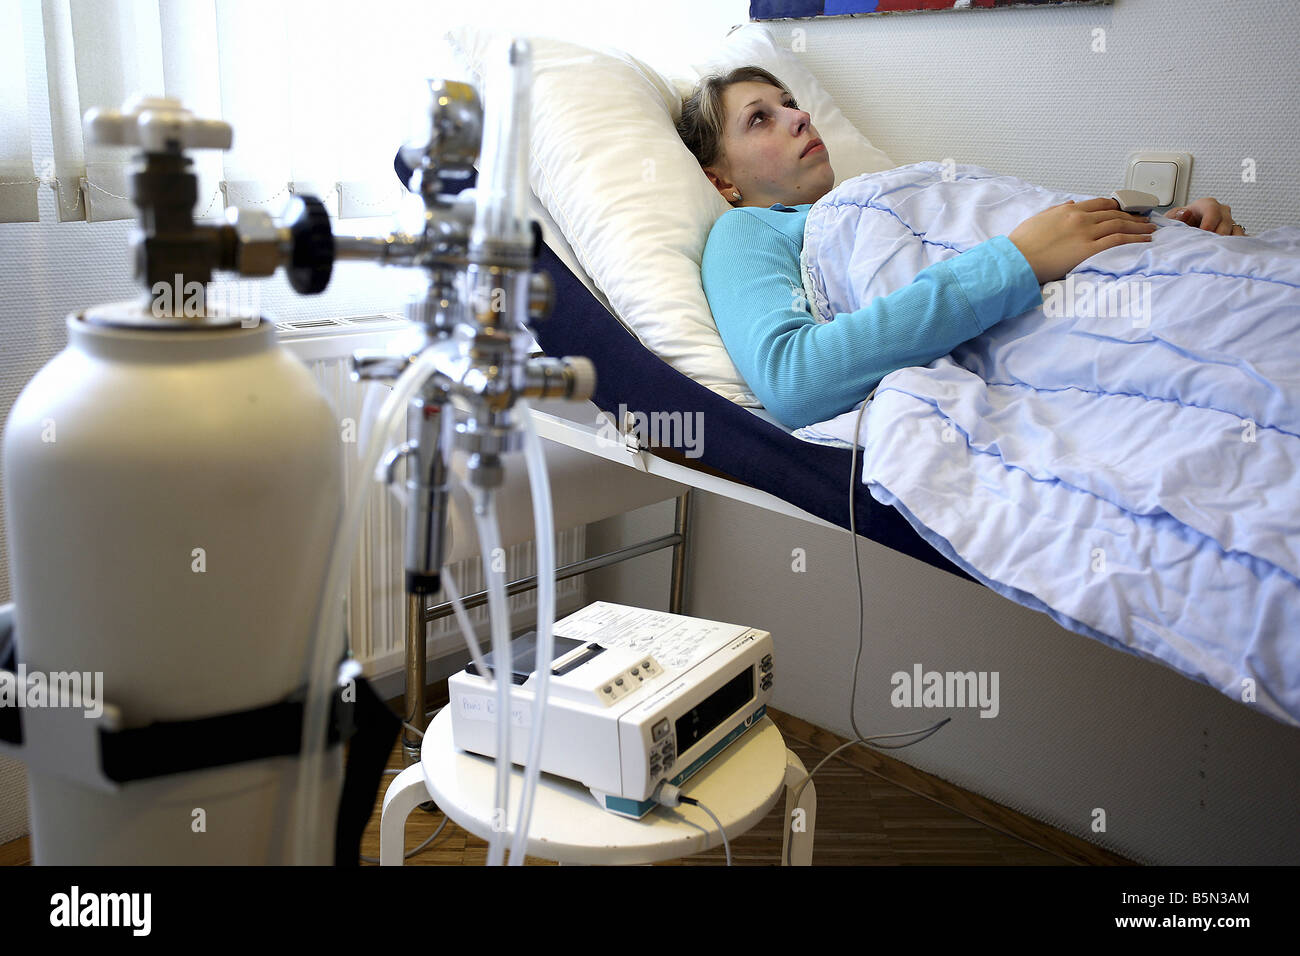 Patient lying in an anaesthetic recovery room after an operation - Stock Image